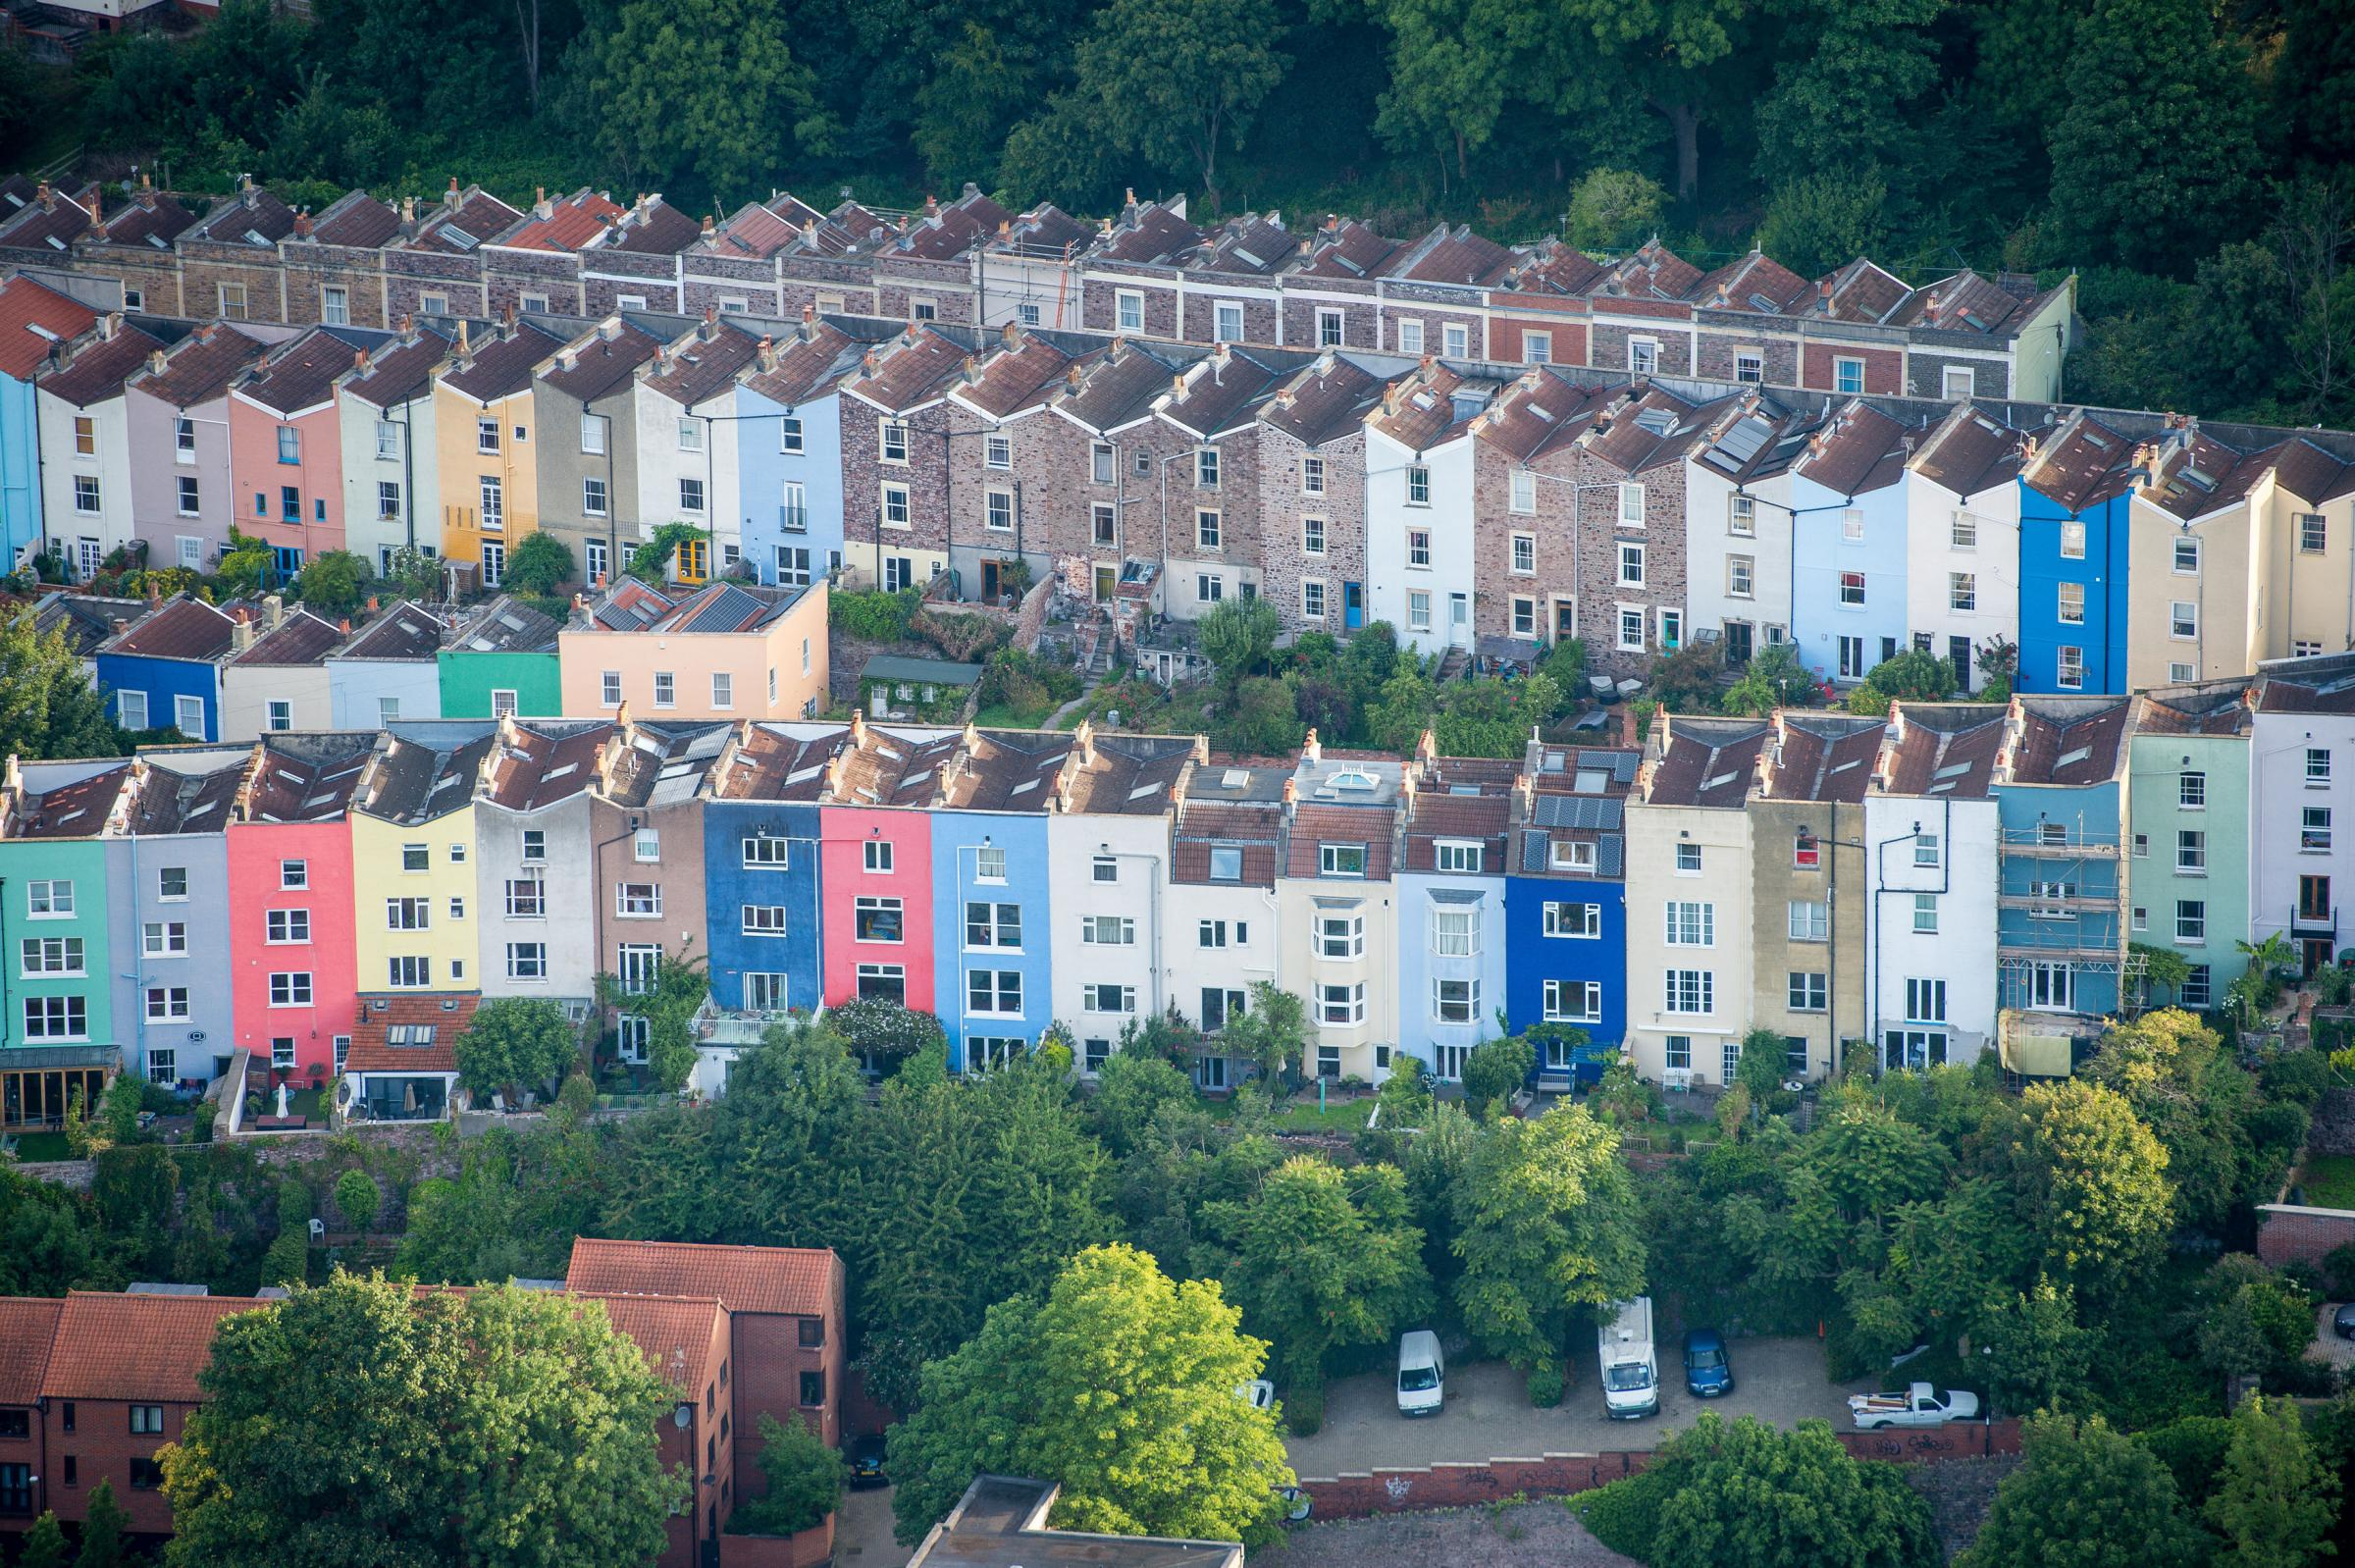 Most expensive place to rent property in Scotland revealed